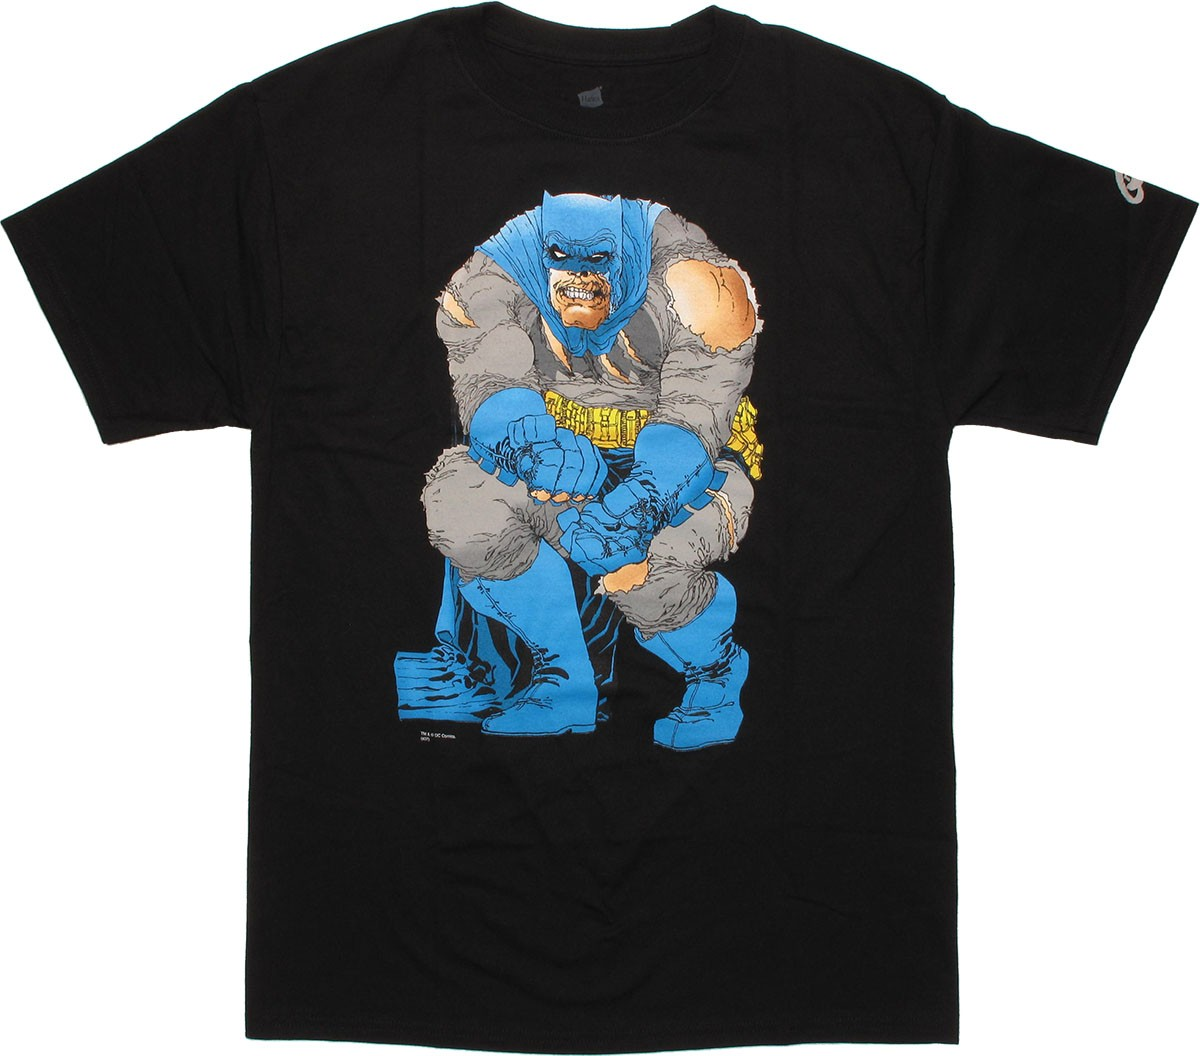 Buy Batman products online in India from animeforum.cf Visit Batman Online Store now. Avail Free Shipping* & Cash on Delivery.